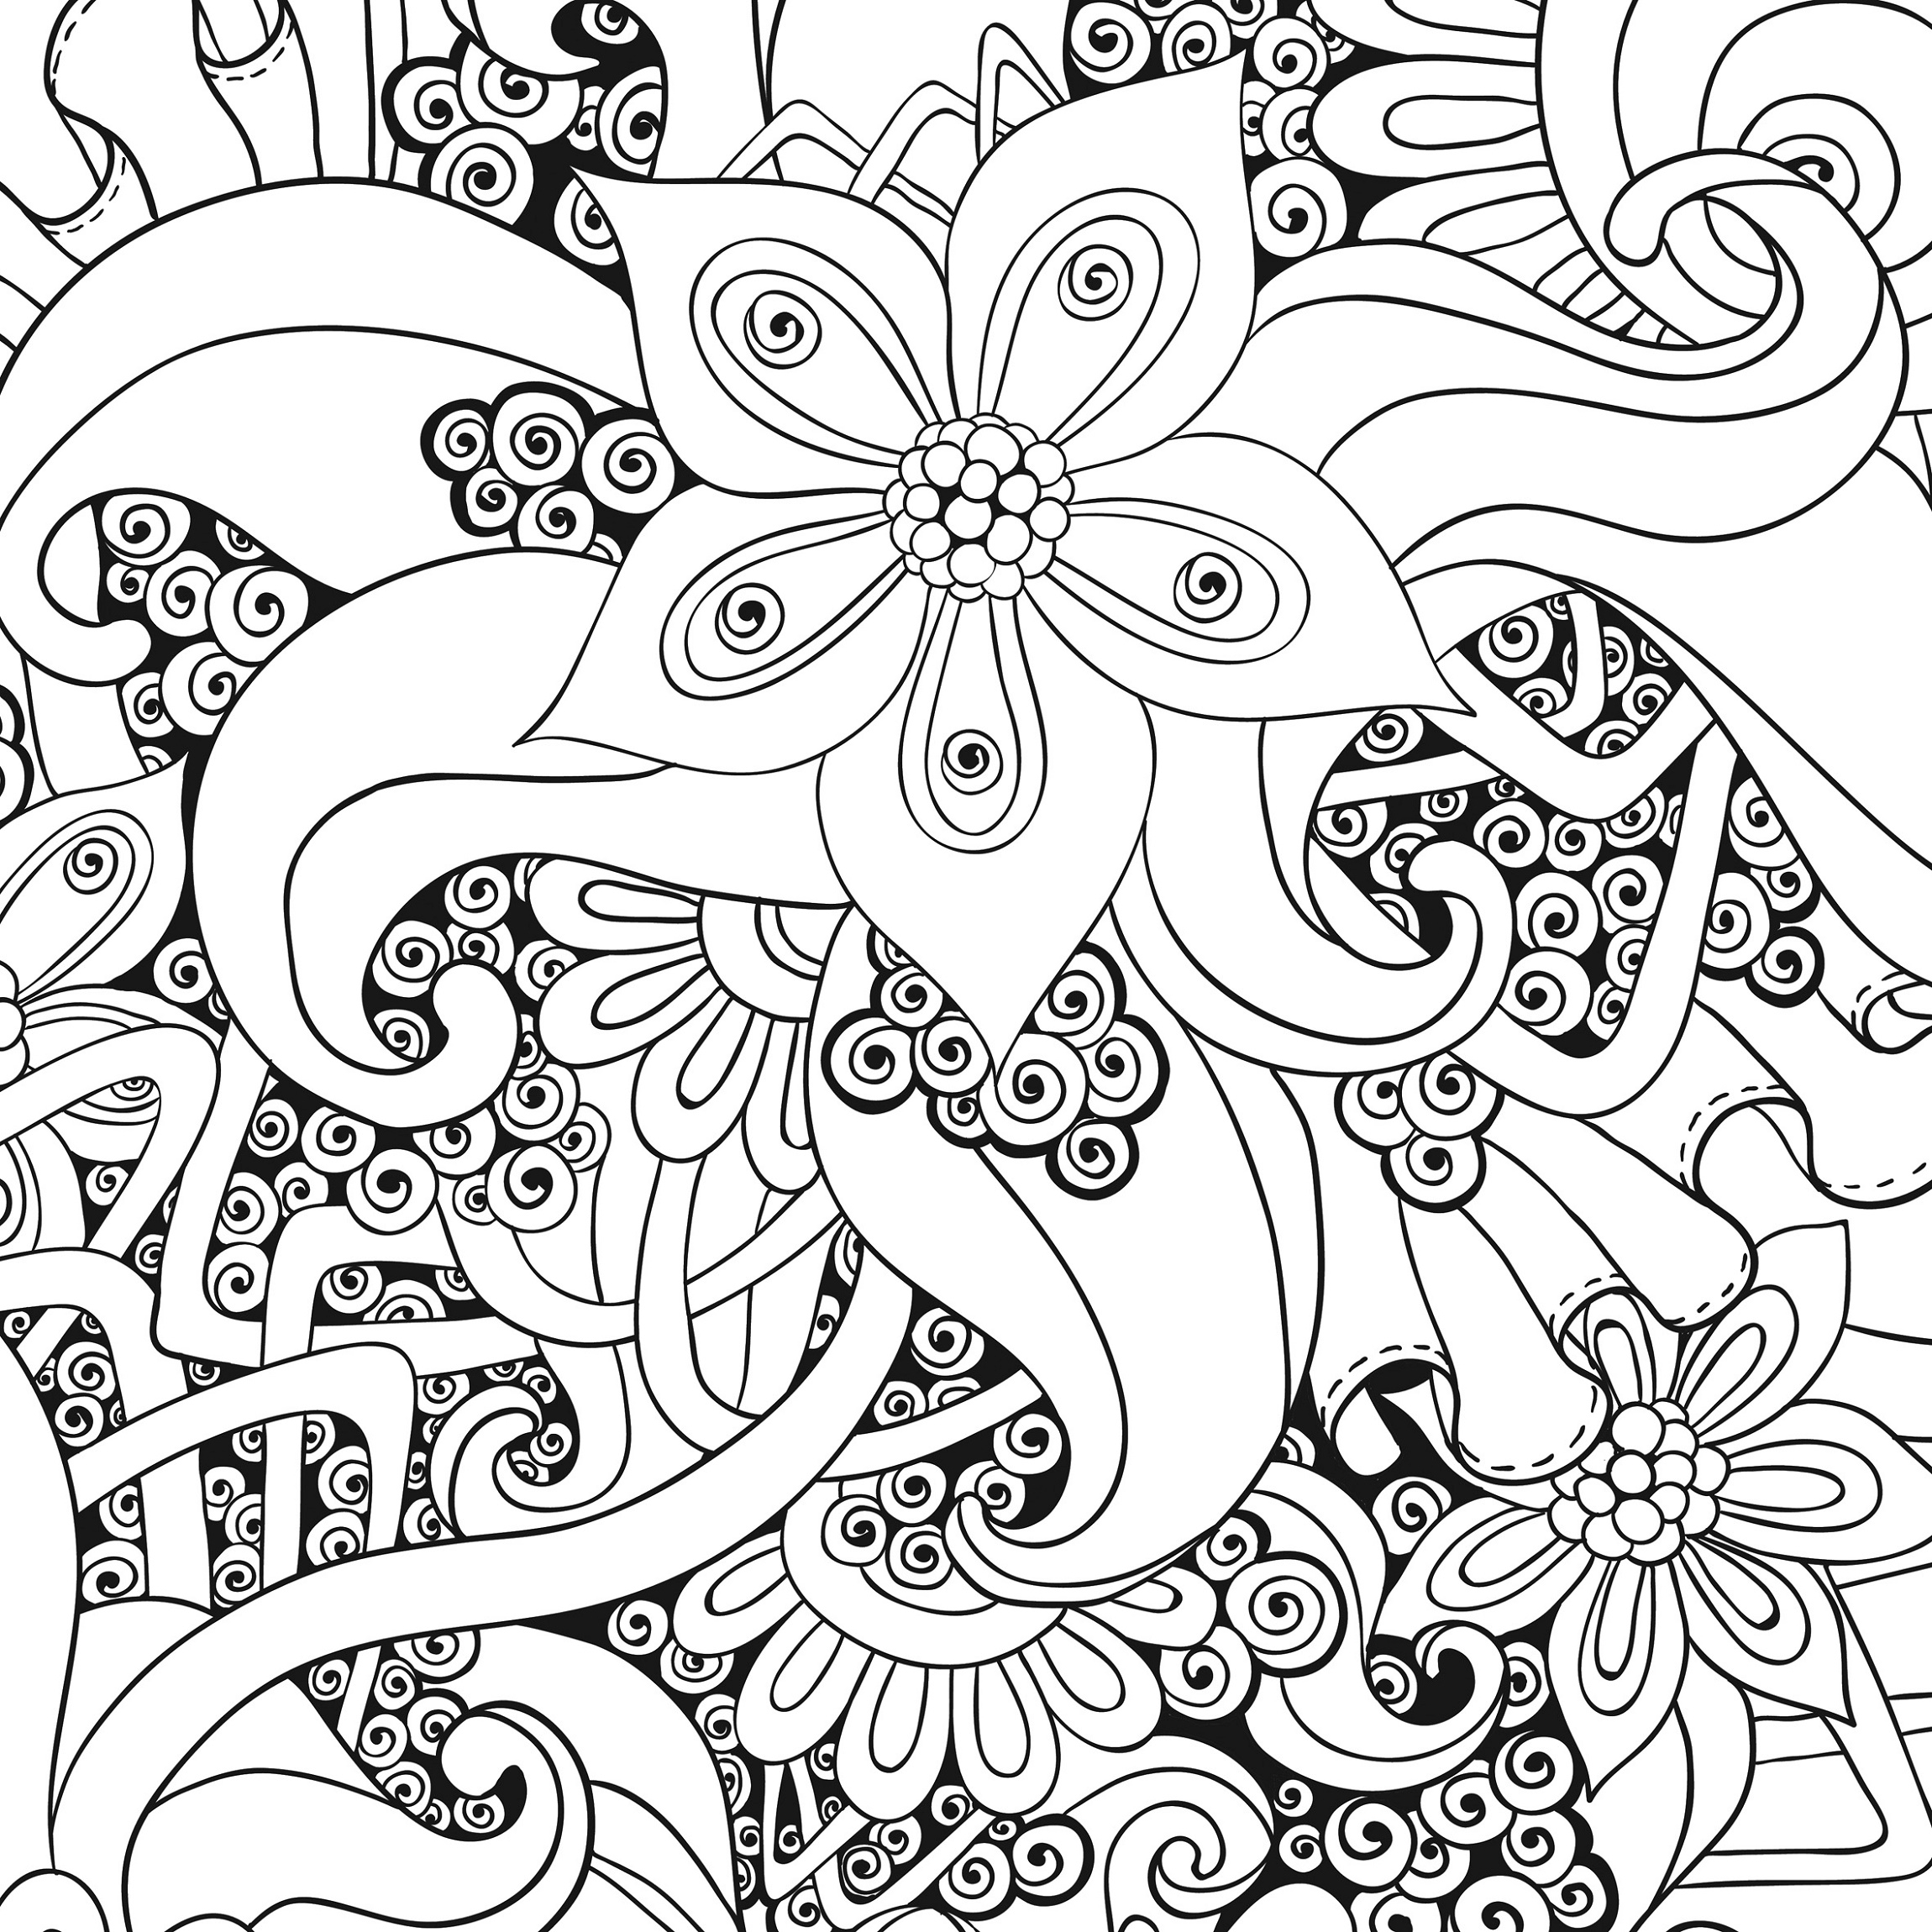 Stress Coloring Pages Anti Stress Coloring Pages Printable Shelter